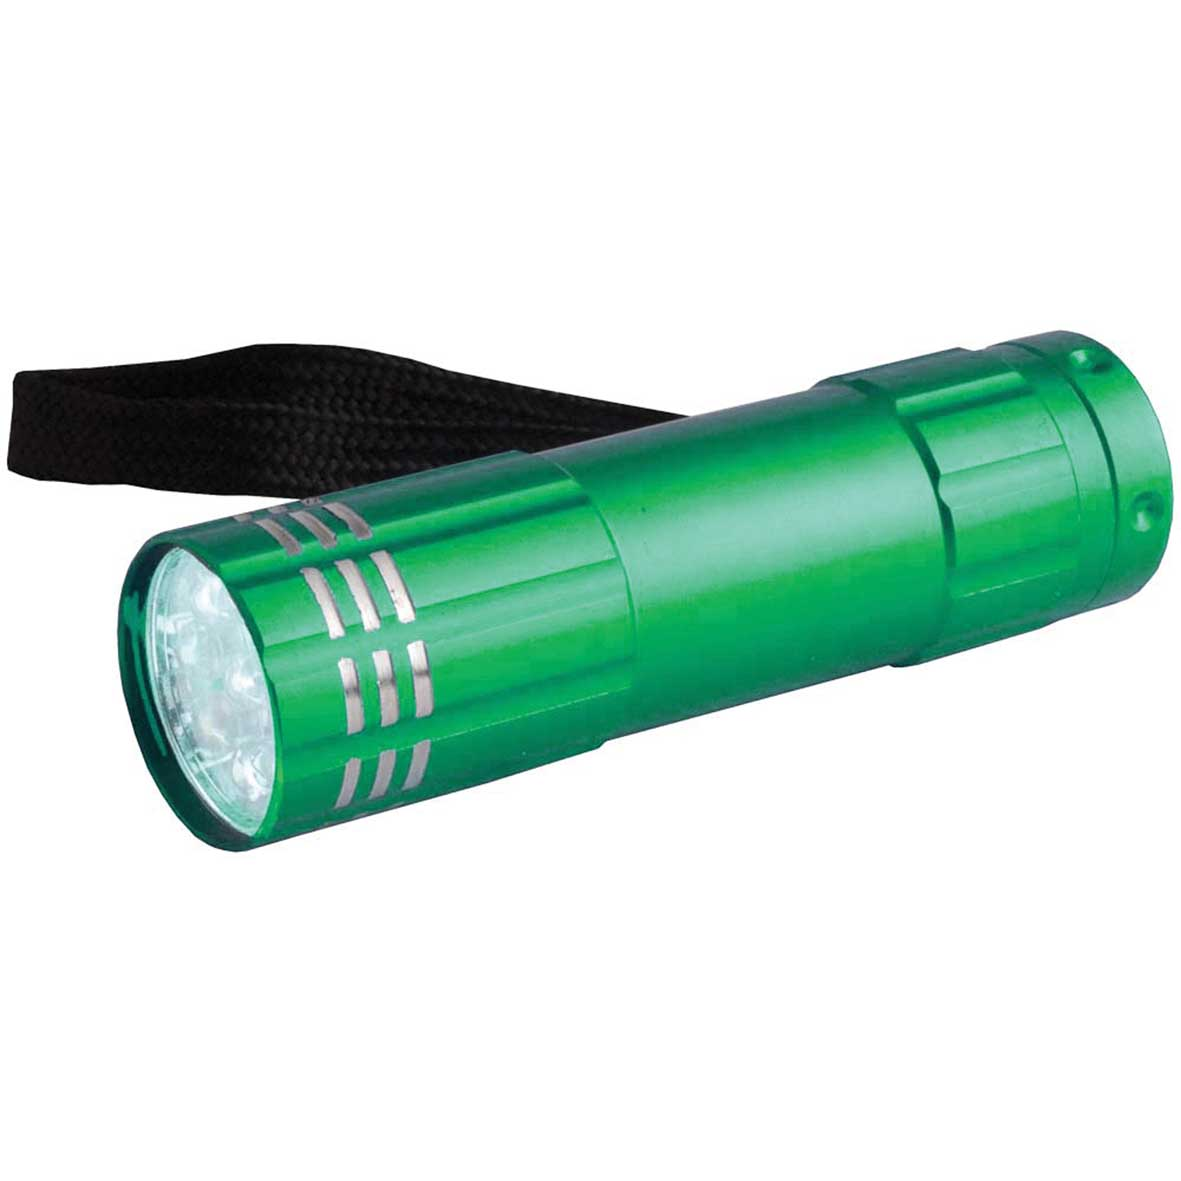 Aluminium torch with 9 LED lights - Green sip-0941204